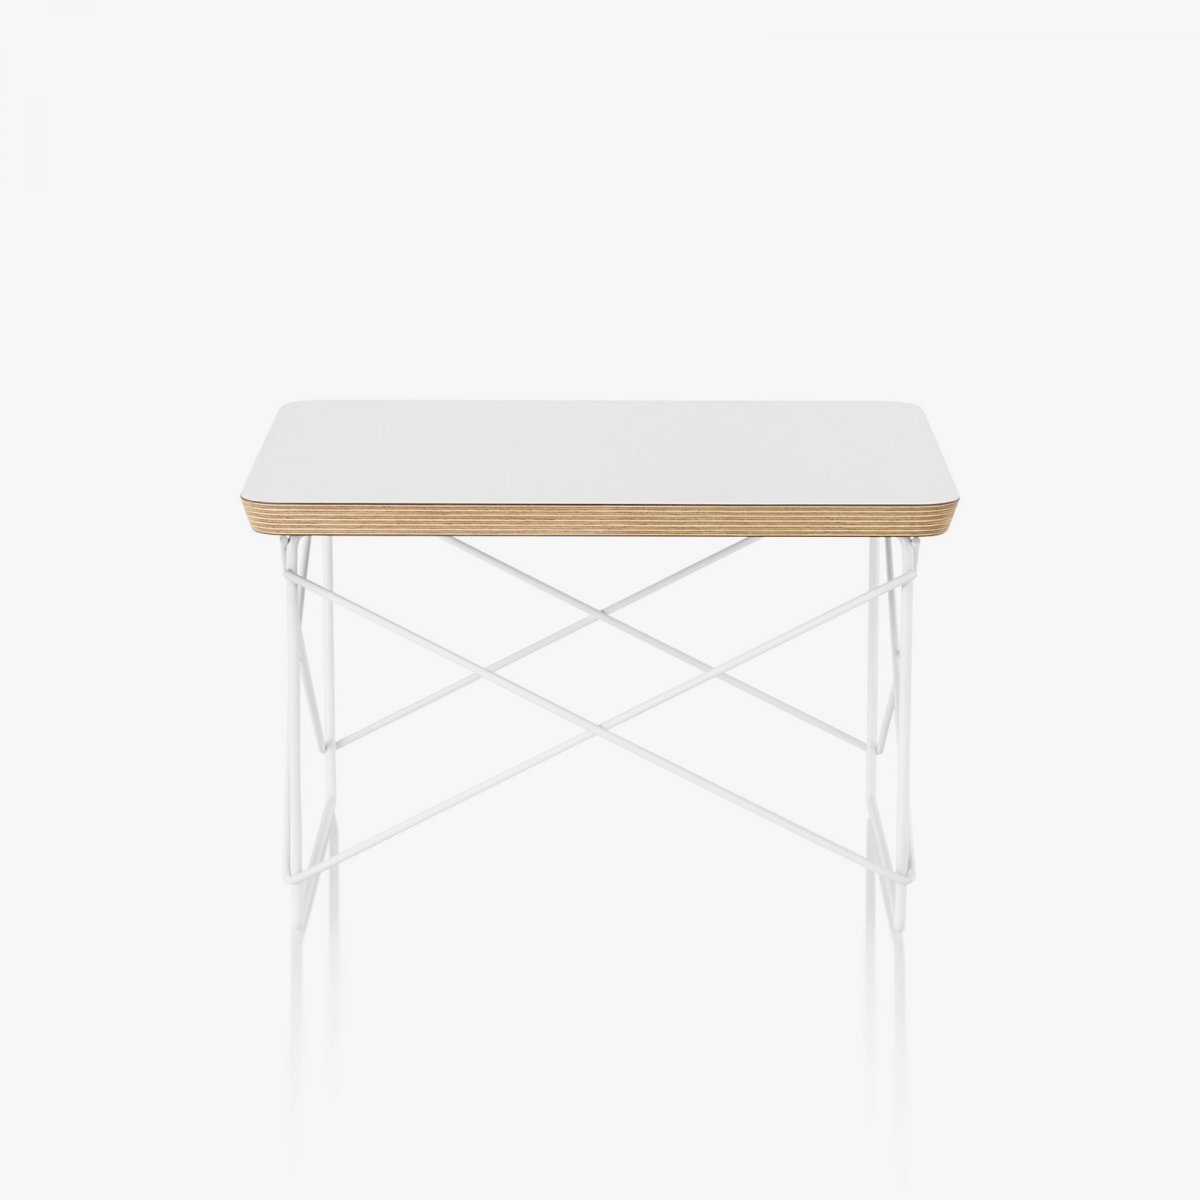 Eames Wire Base Low Table, white top with white base.